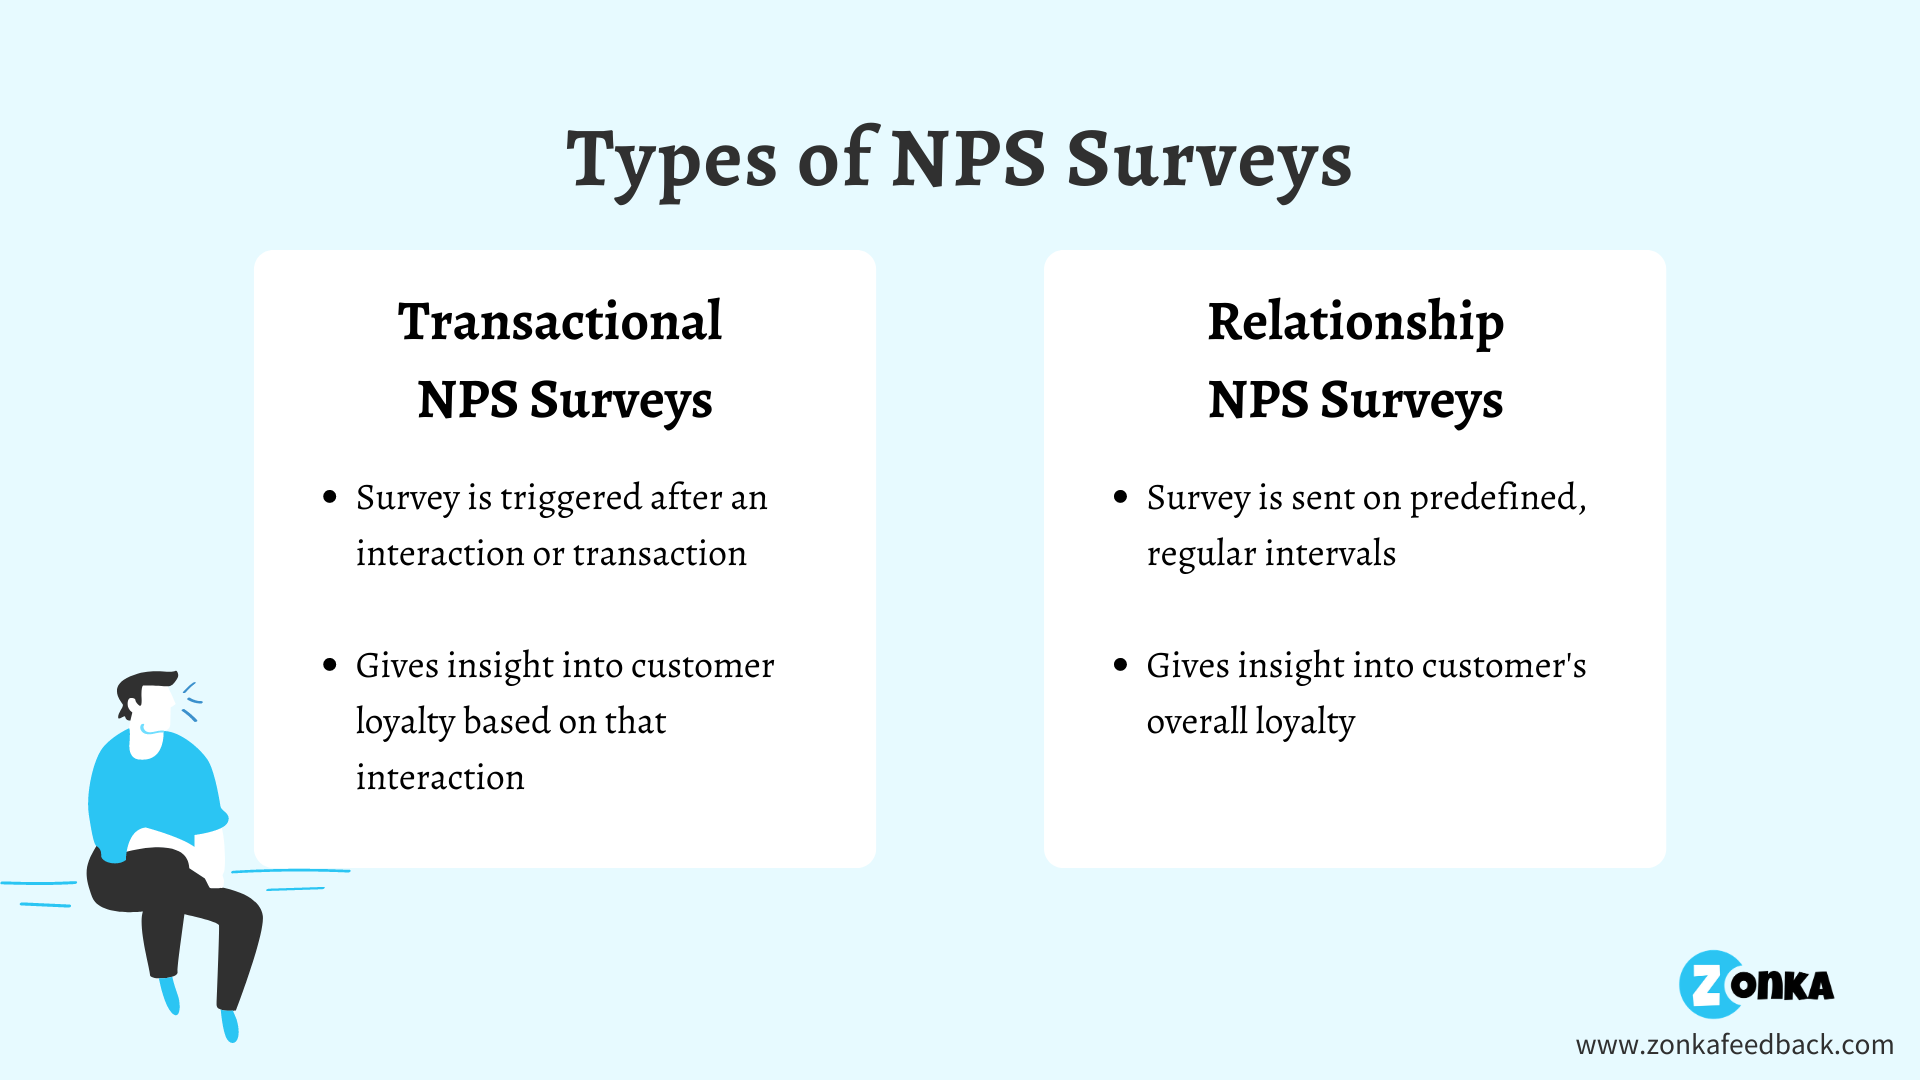 Transactional and Relationship NPS